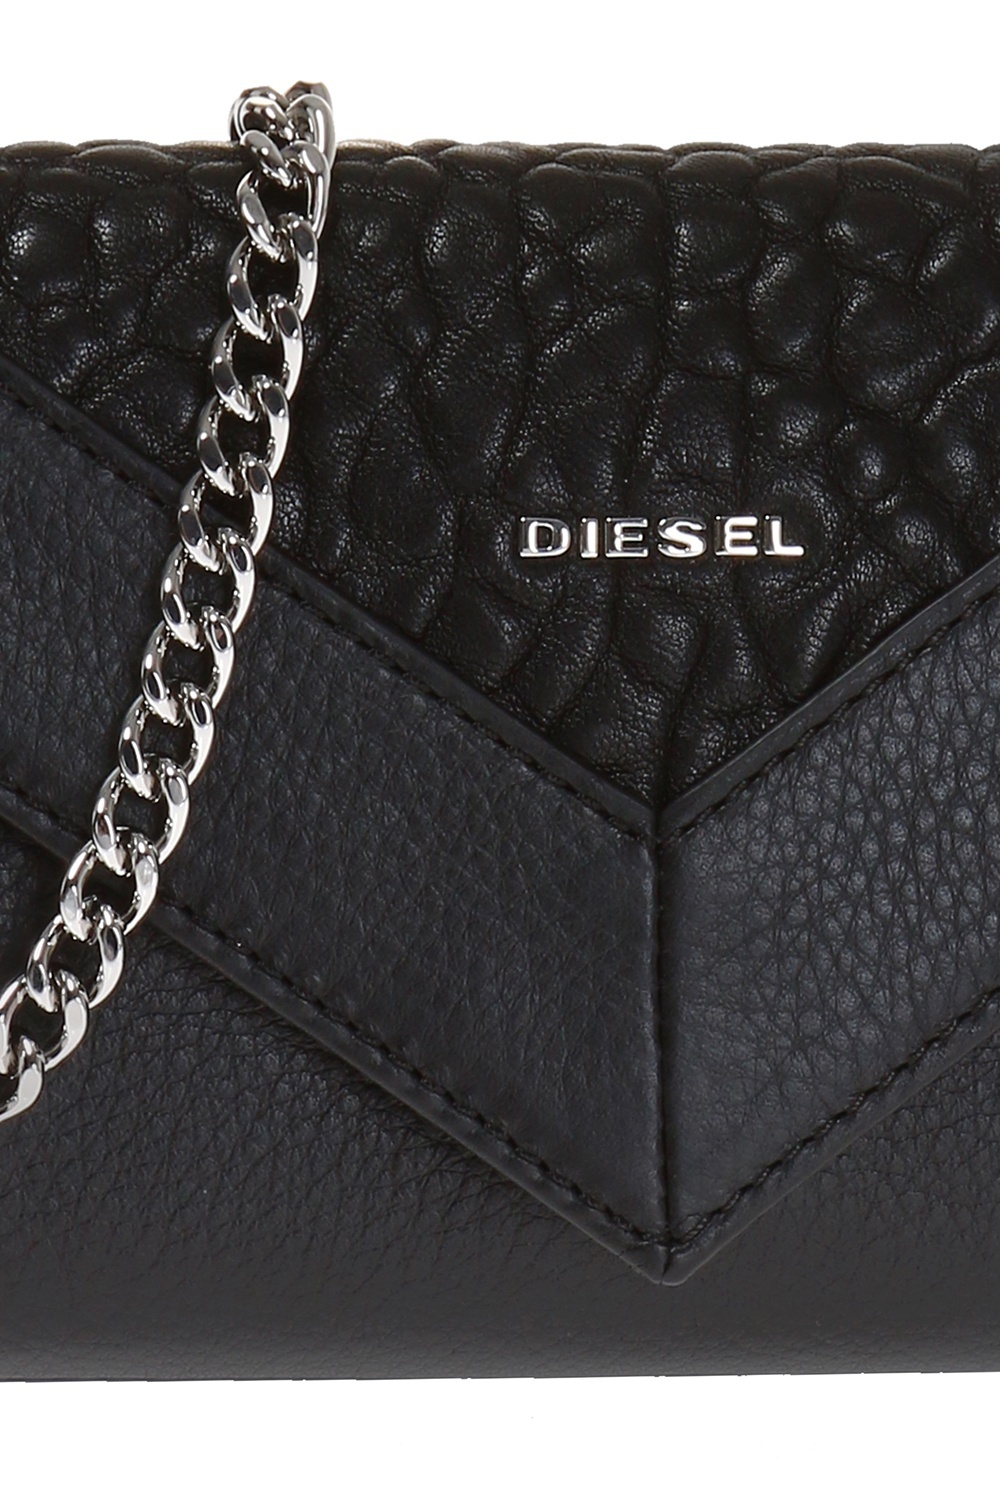 DIESEL DIESEL GIPSI WALLET ON CHAIN BAG